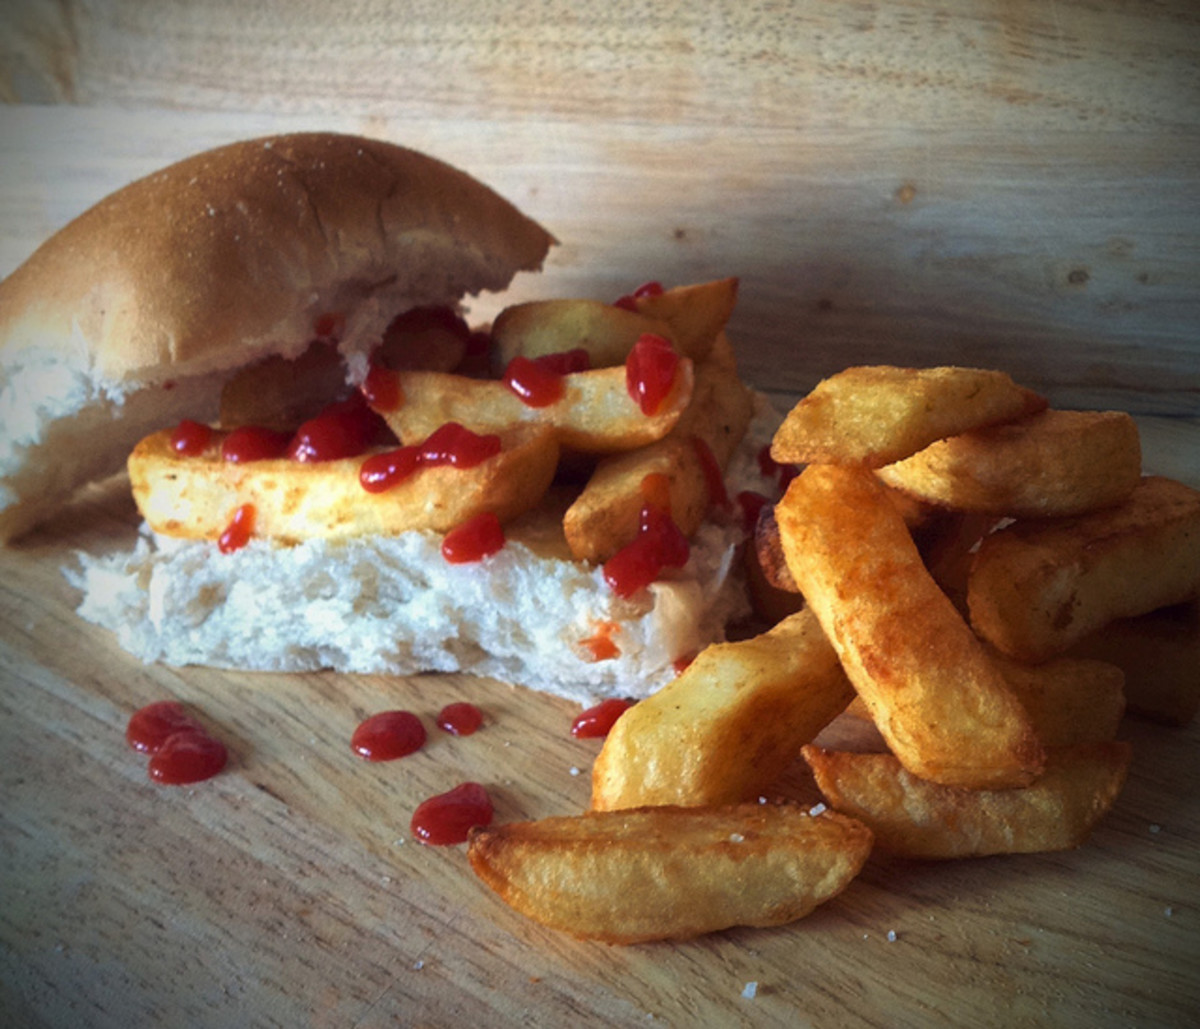 The Chip Butty - A Greasy Guilty Pleasure!